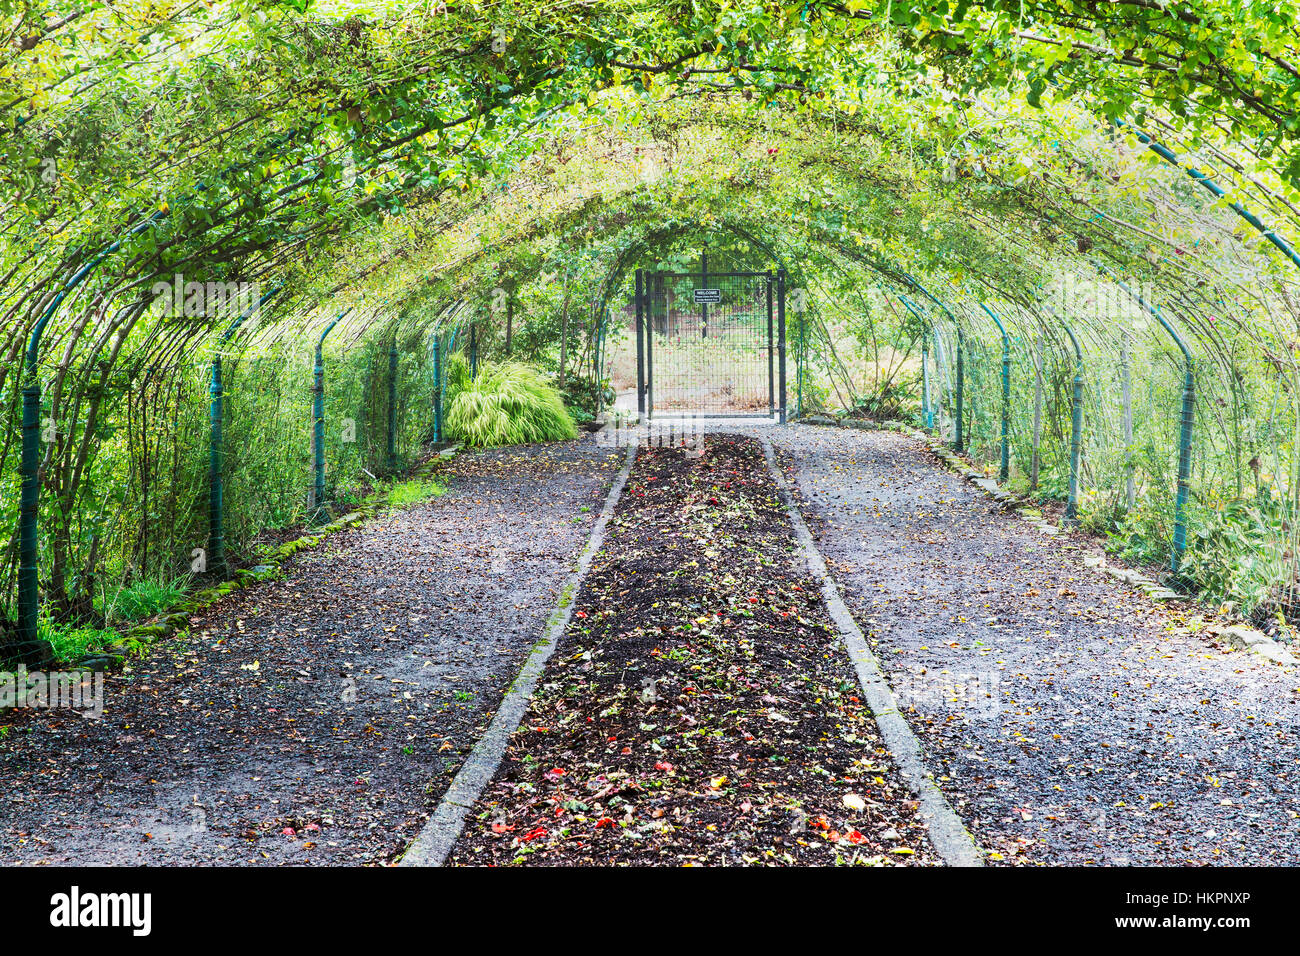 Arbor over fall garden beds.   Point Defiance Park, Tacoma, WA boasts wonderful gardens including rose gardens, - Stock Image